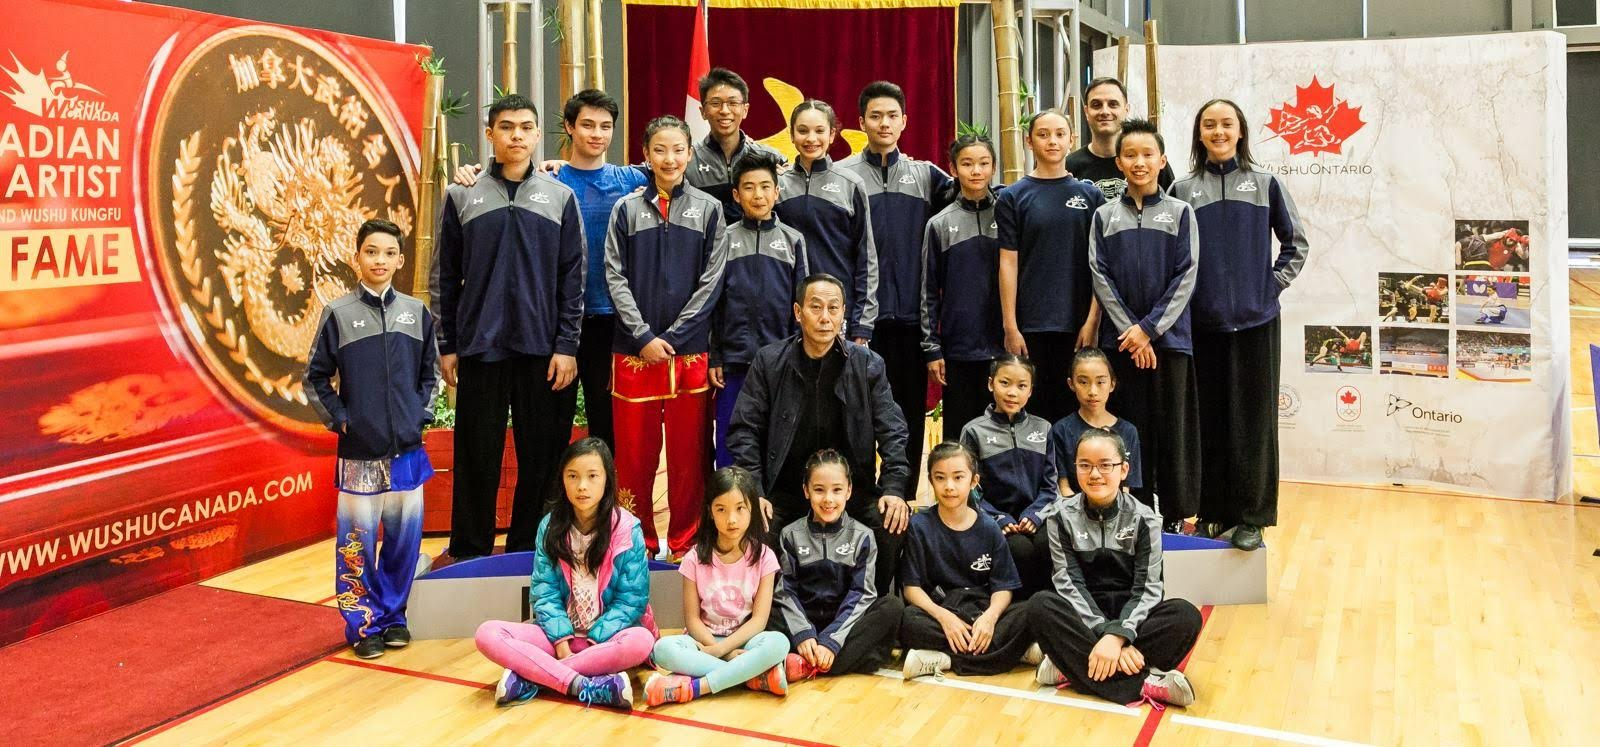 2018-wayland-li-athletes-canadian-national-wushu-champions.JPG